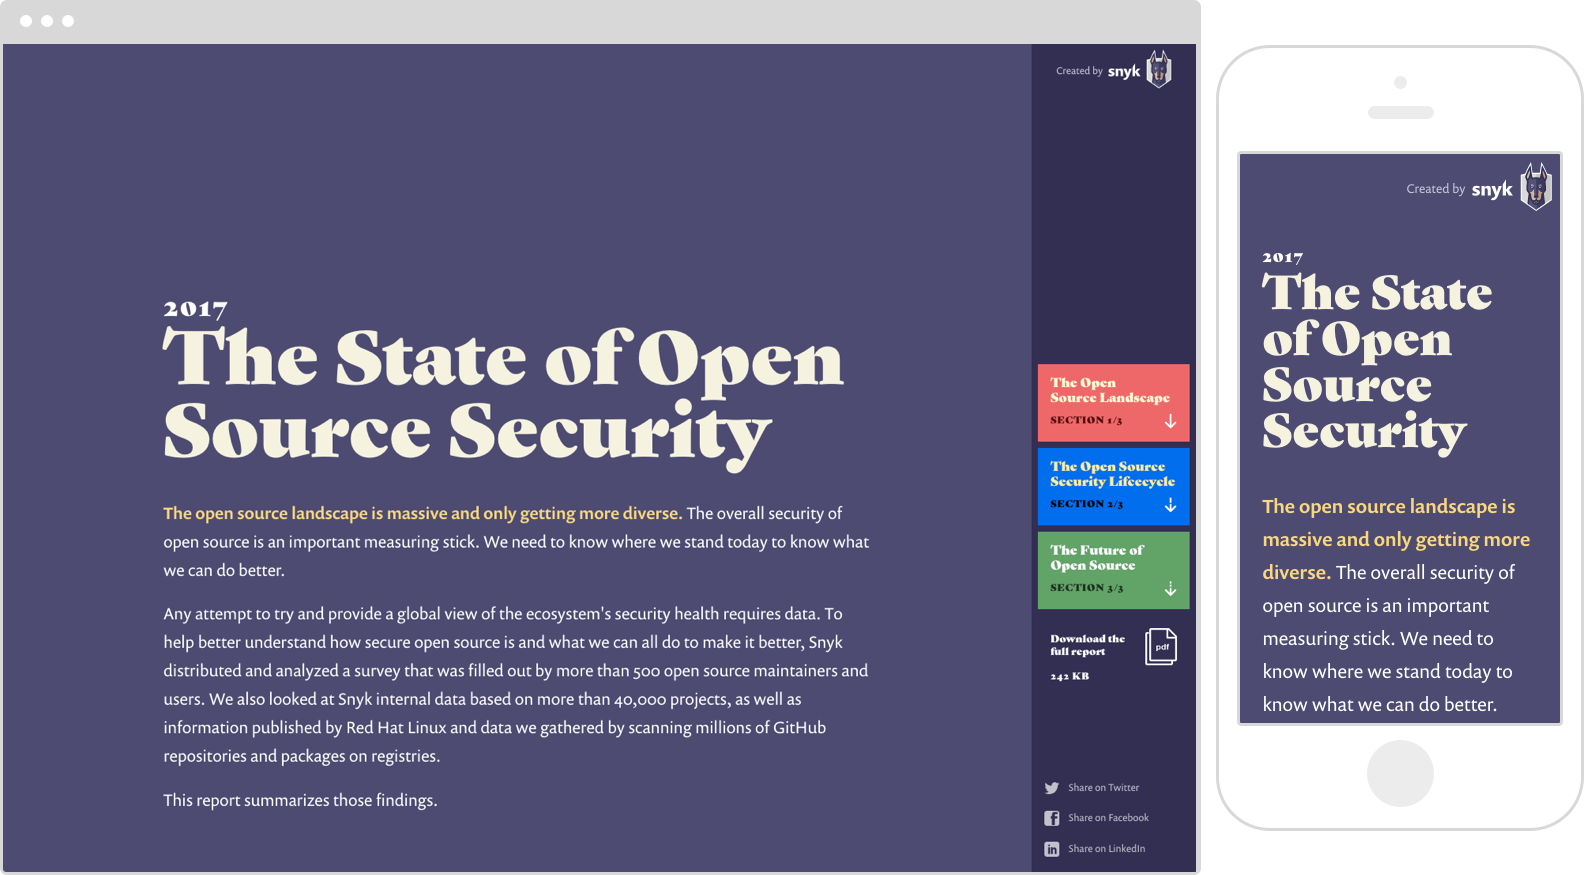 Snyk State of Open Source Security homepage, including social sharing icons in the navigation.